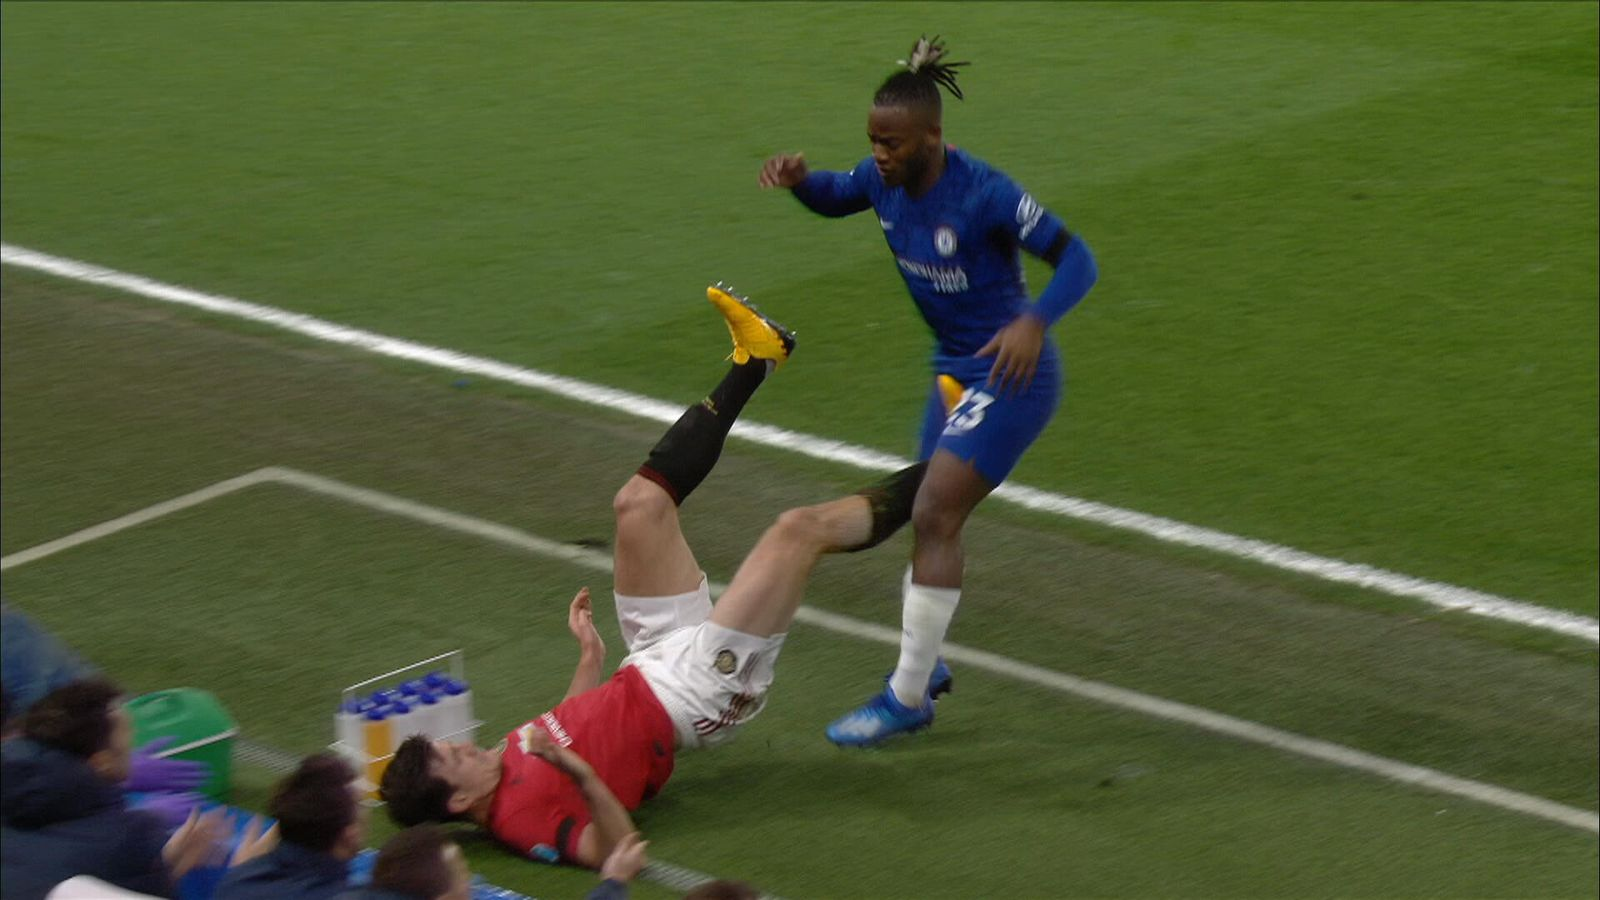 Harry Maguire red card? Should Manchester United defender have been sent off